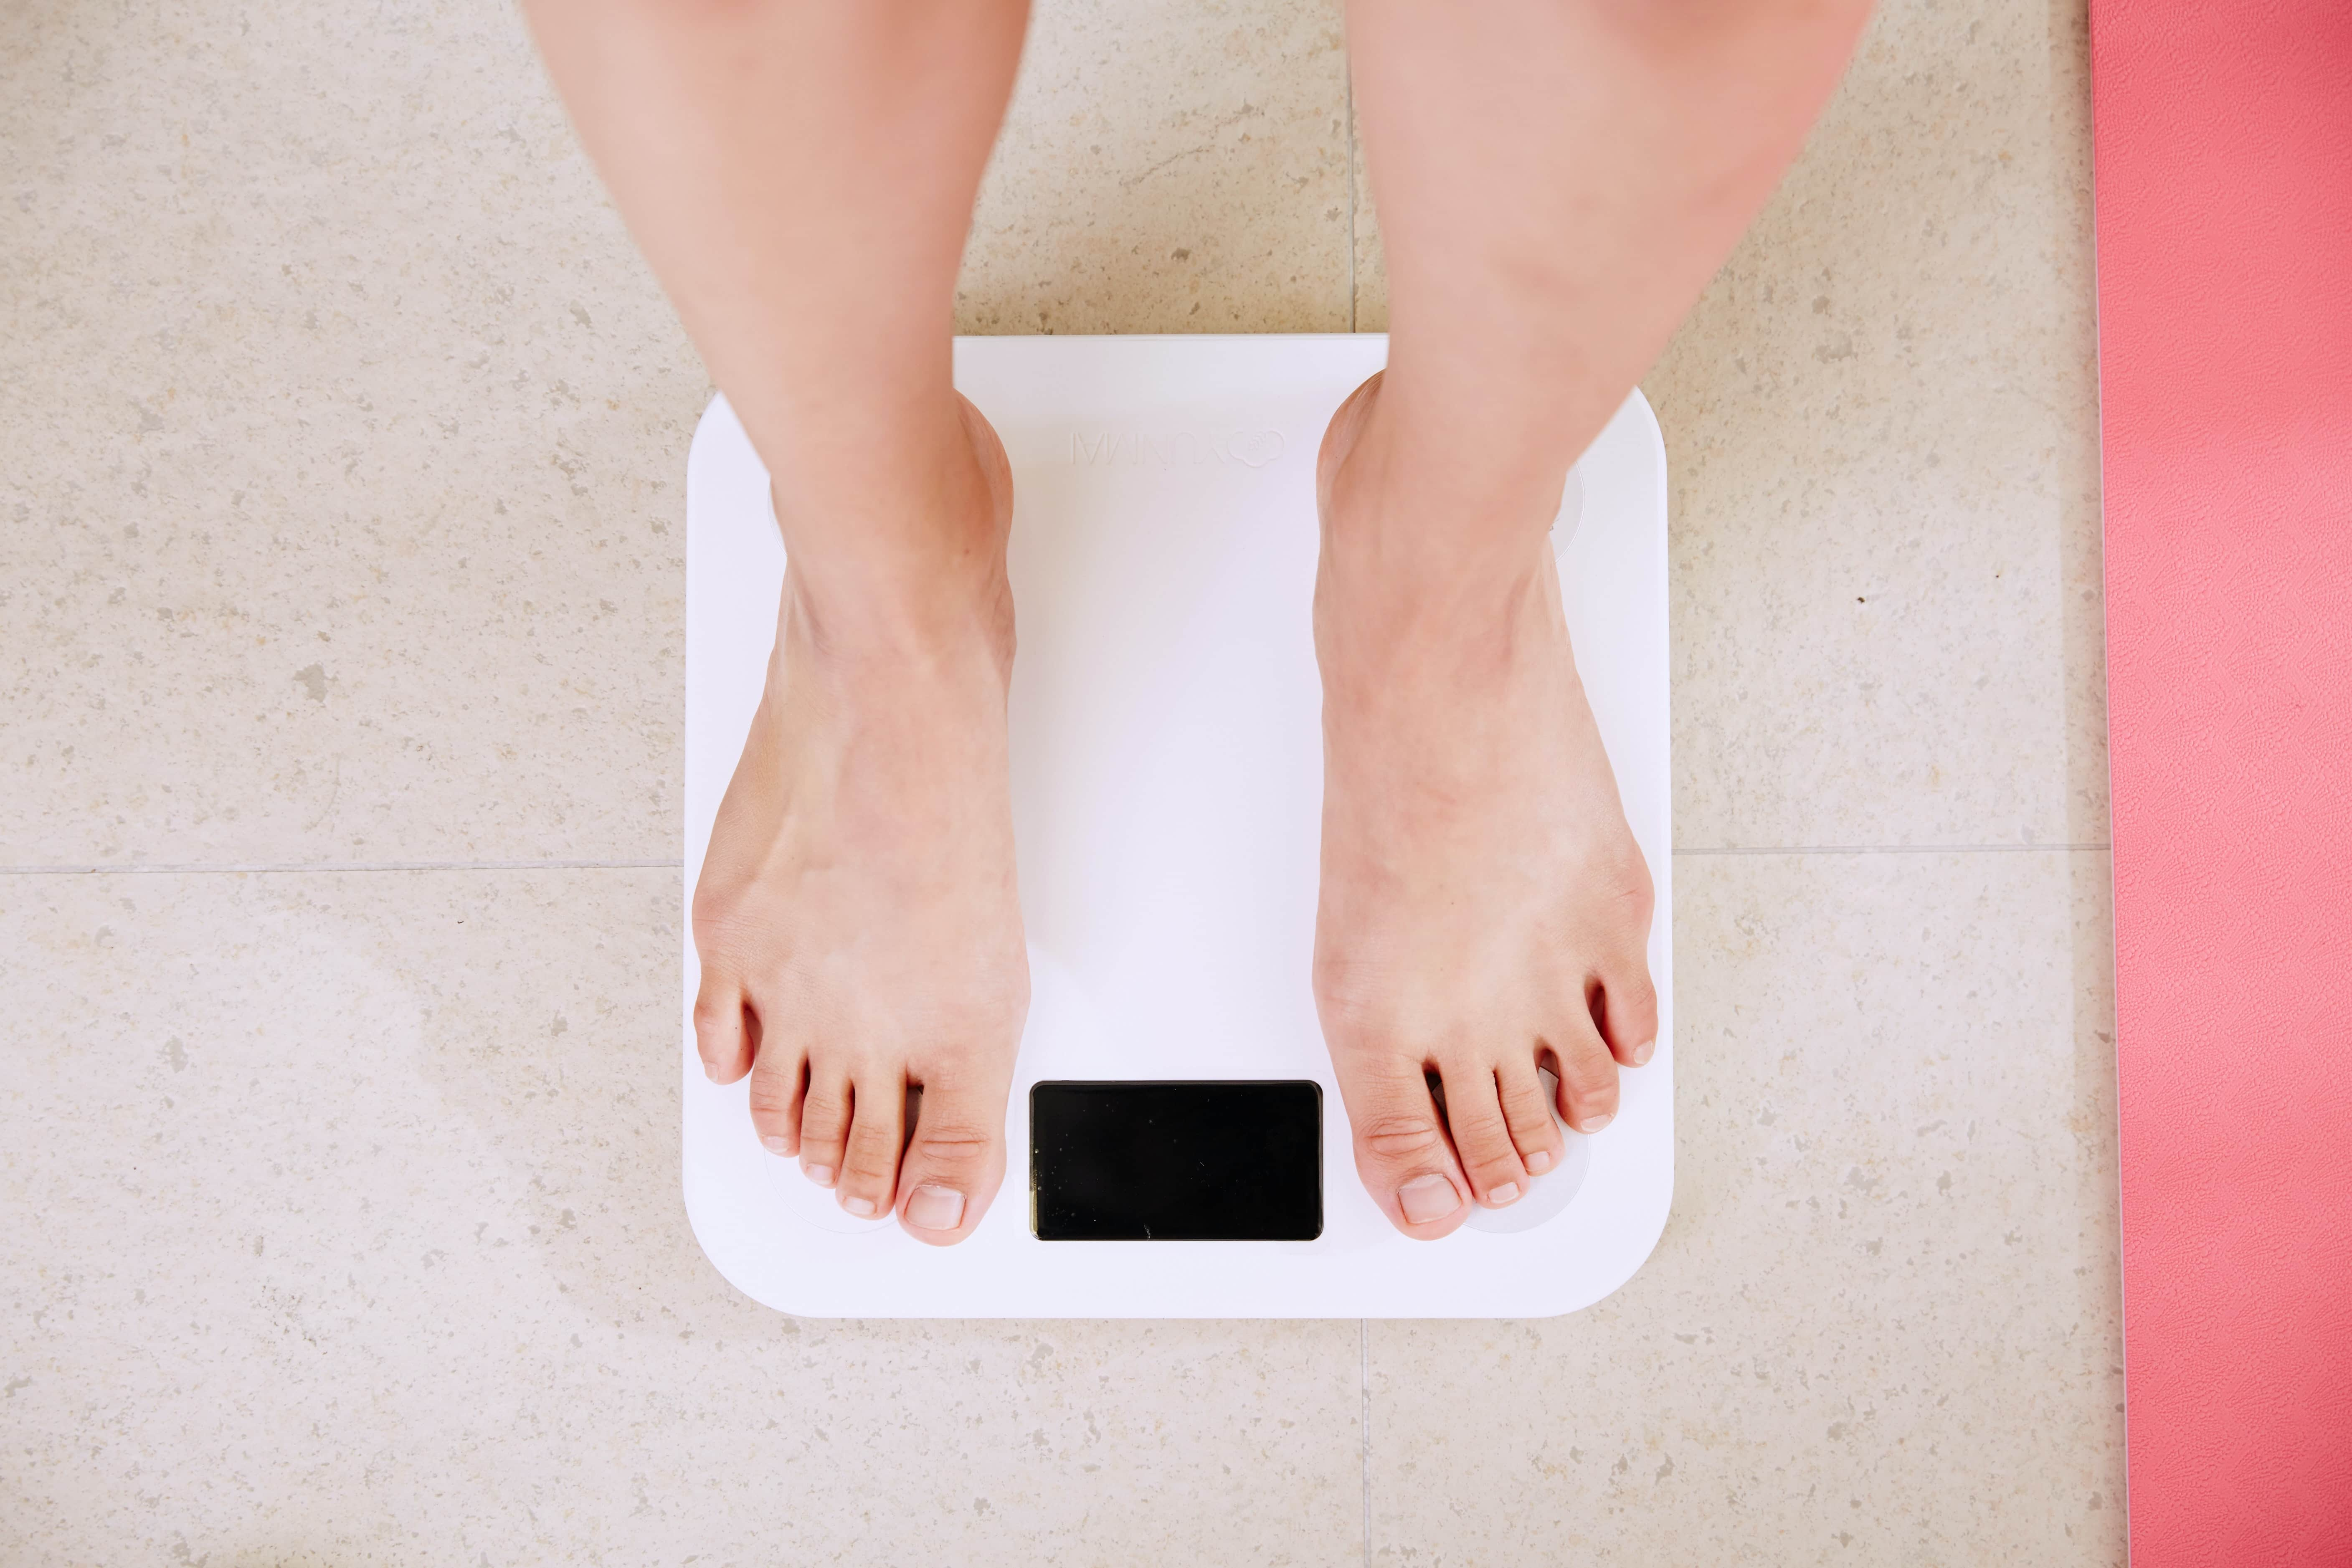 hypnosis for weight loss etobicoke